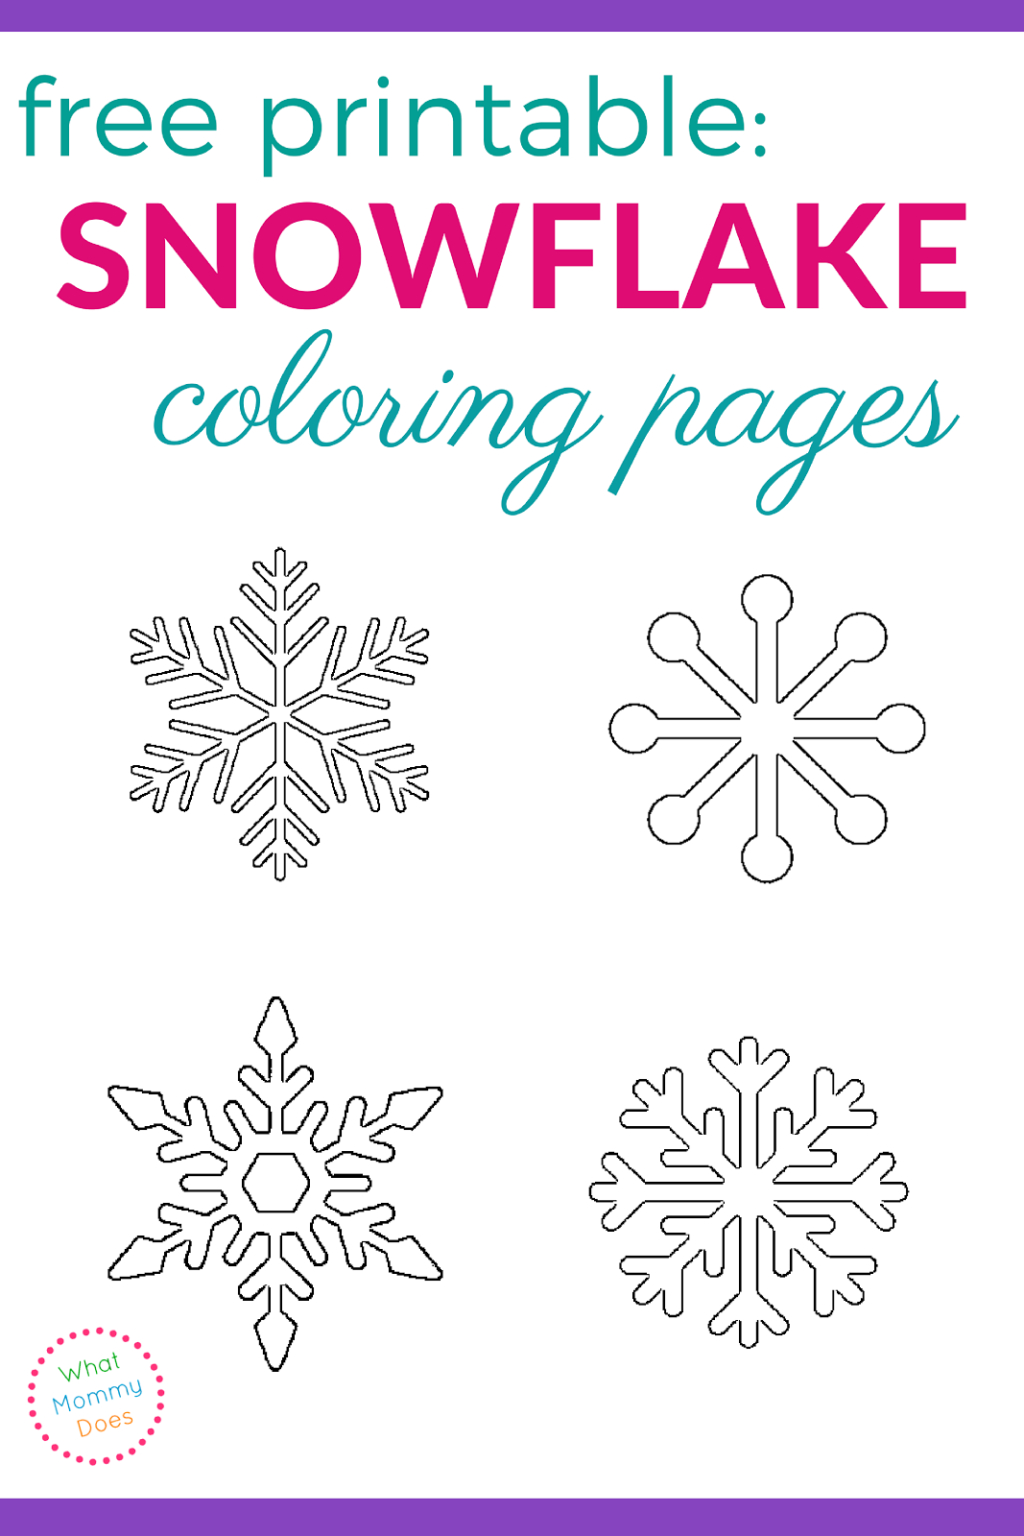 Coloring Book World ~ Splendi Snowflake Coloring Sheet Image - Free Printable Snowflakes